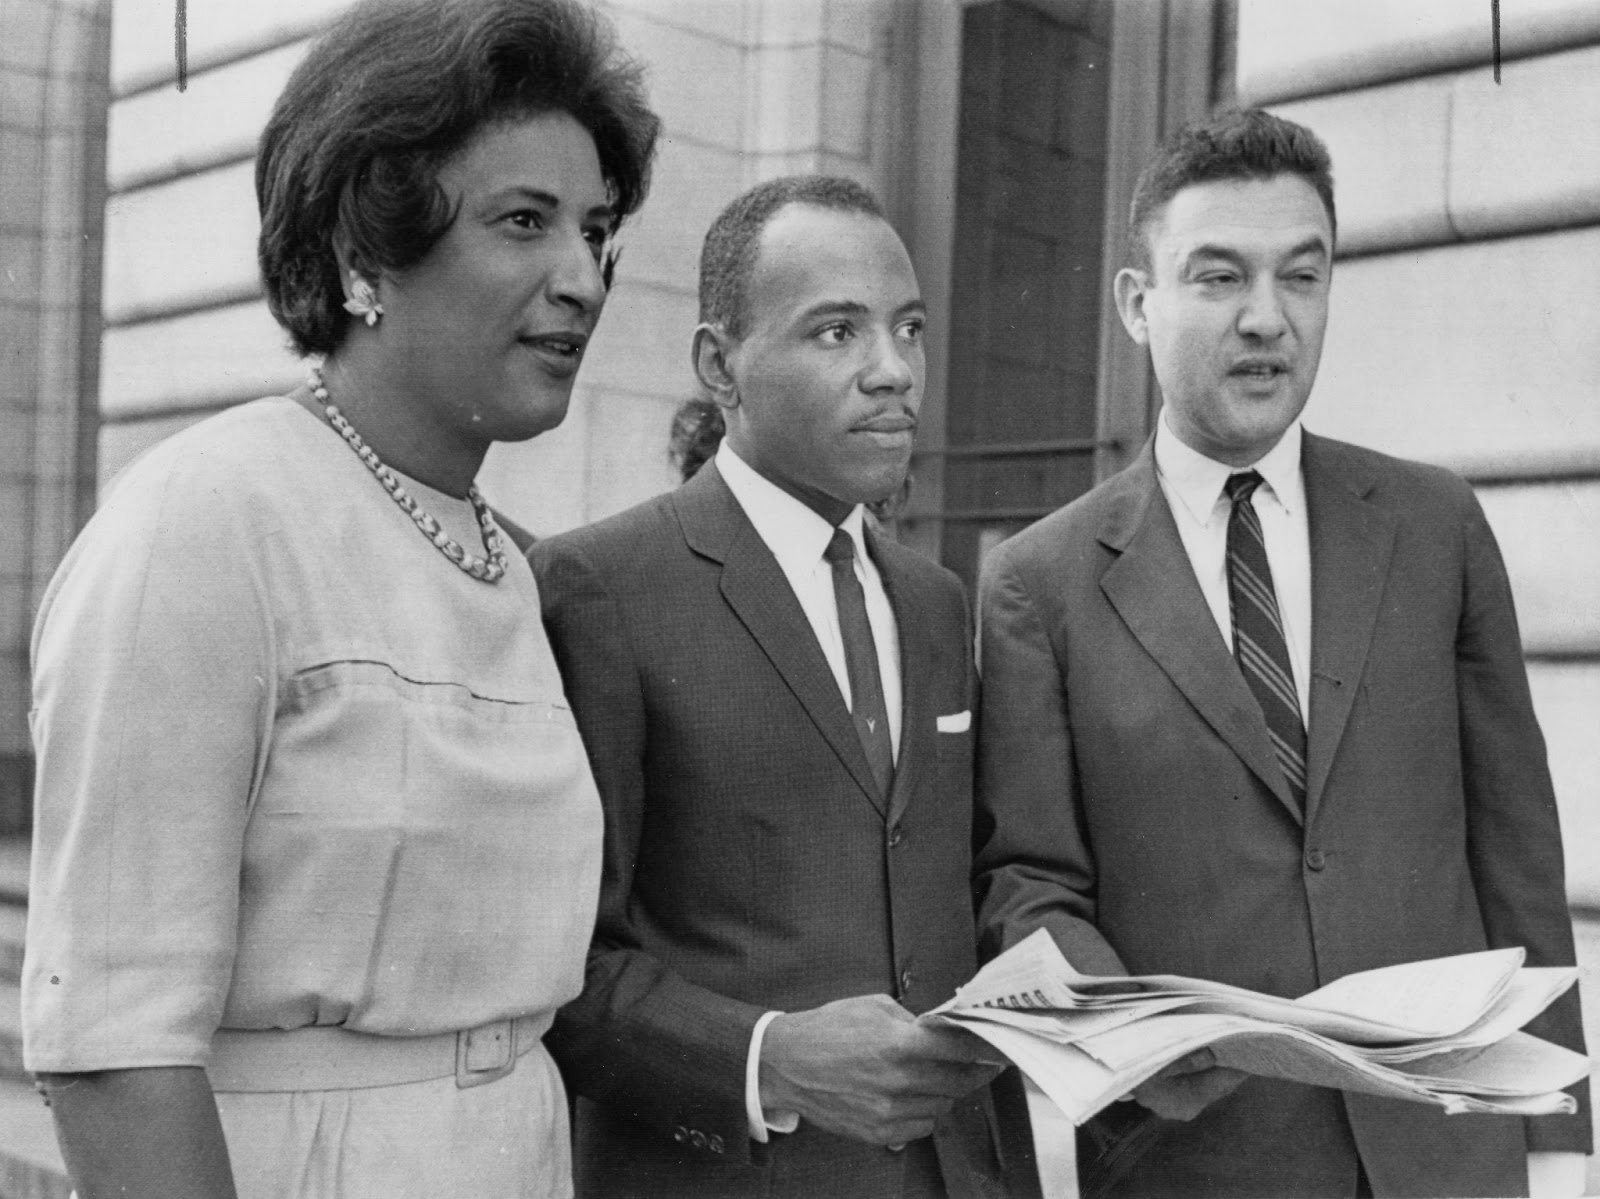 Constance Baker Motley, African American History, Black History, African American Federal Judge, First Black Woman Federal Judge, KOLUMN, KINDR'D Magazine, KINDR'D, Willoughby Avenue, Wriit,